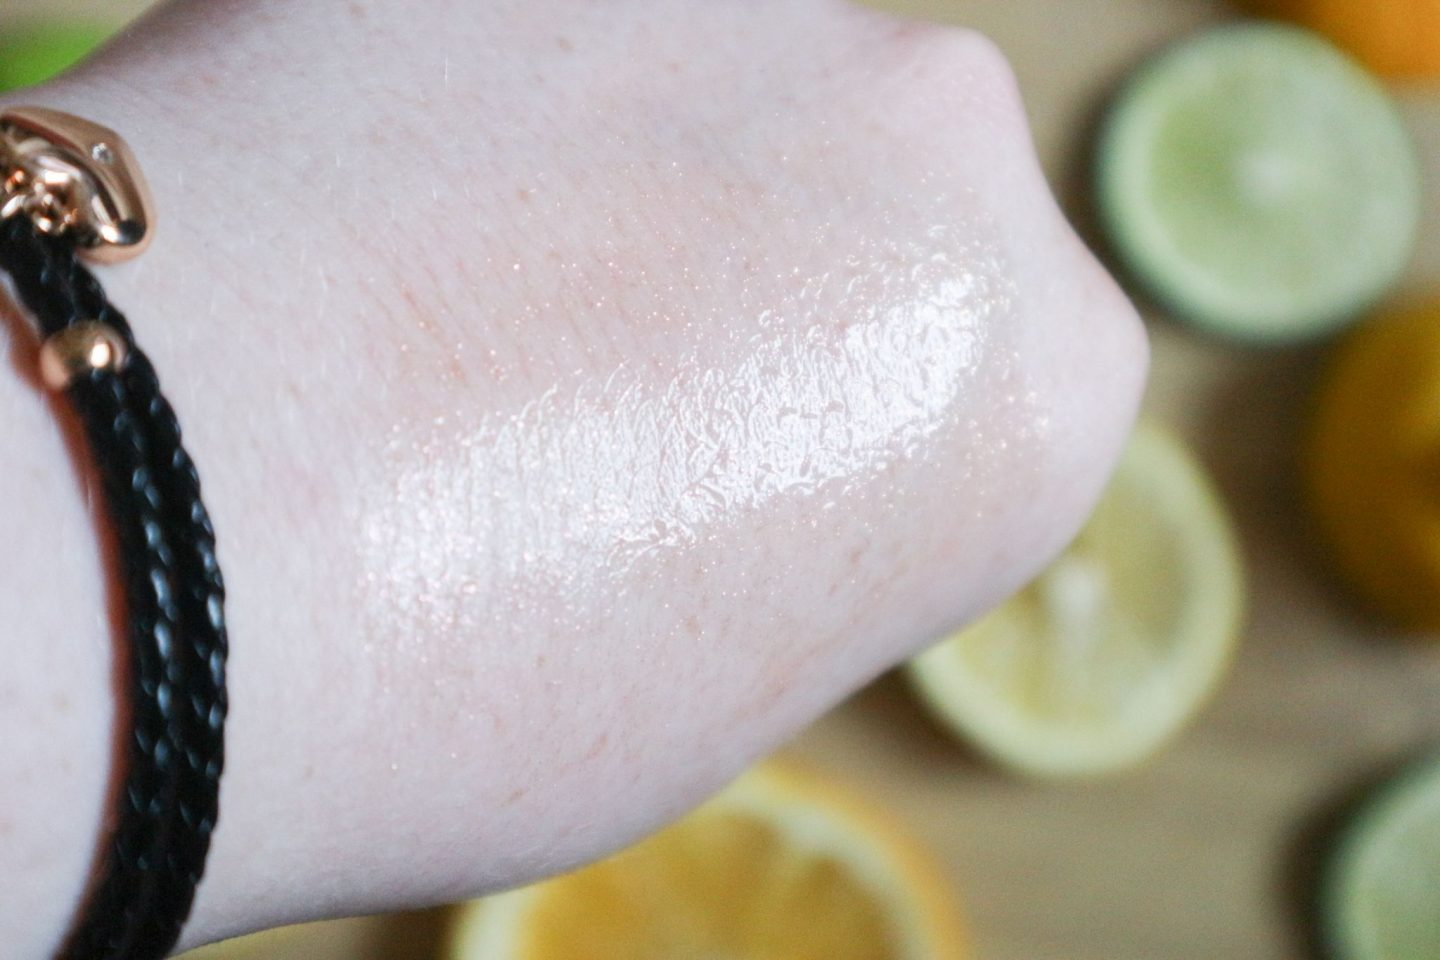 Too Faced Tutti Fruiti Fresh Squeezed Highlighter Drops in Sparking Pink Grapefruit swatch